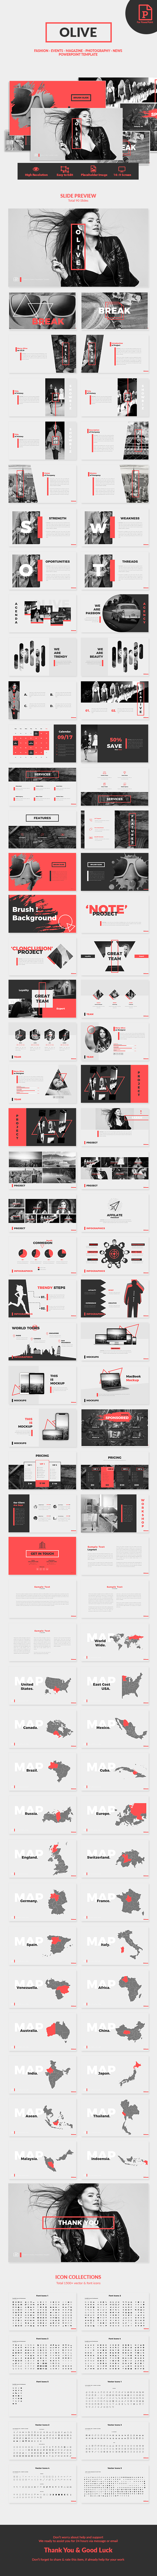 Olive - Fashion PowerPoint Template - Creative PowerPoint Templates